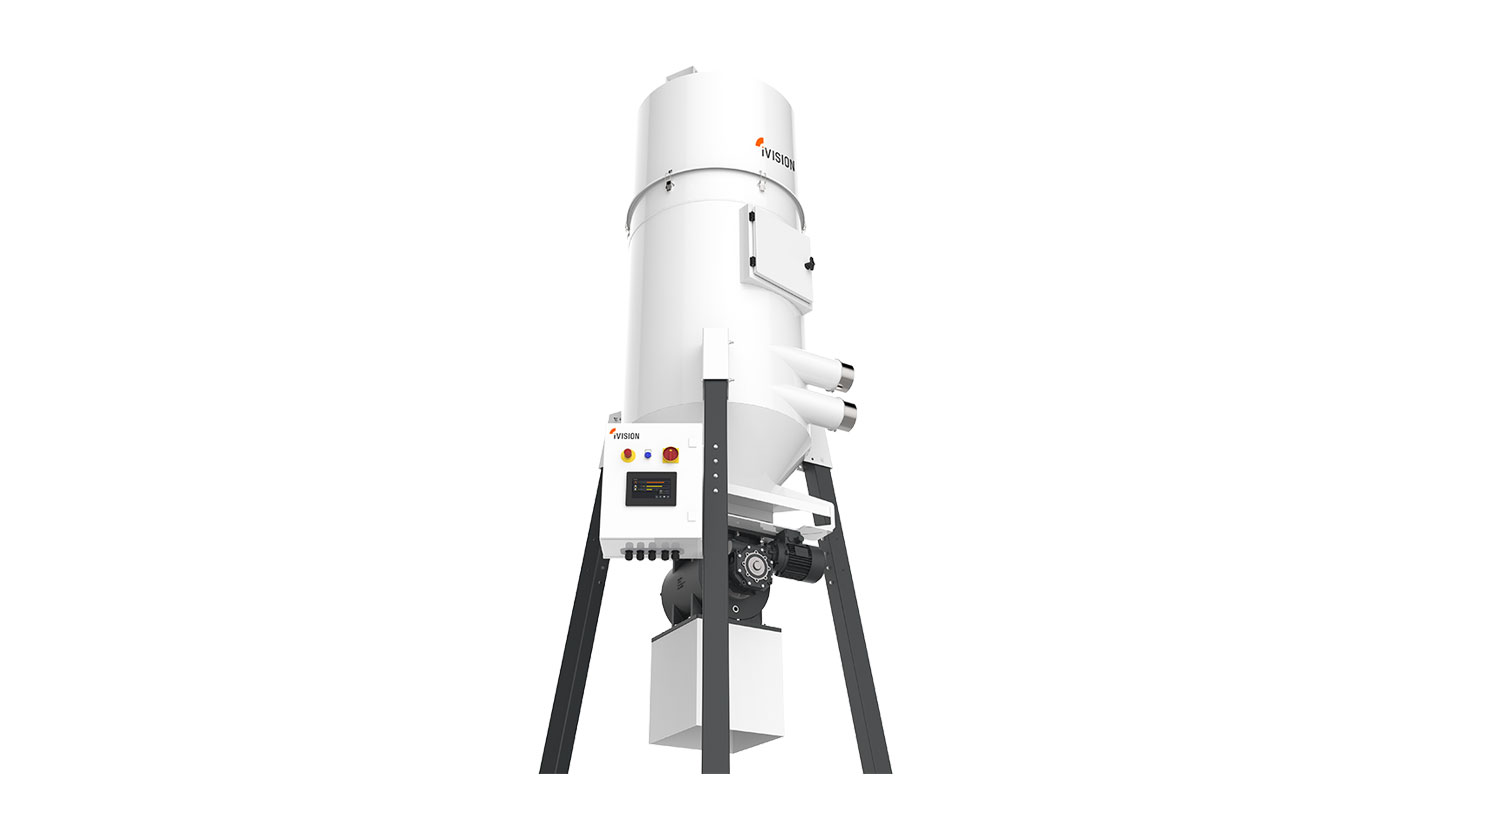 INT aluminum dust collector iVision iV5 b